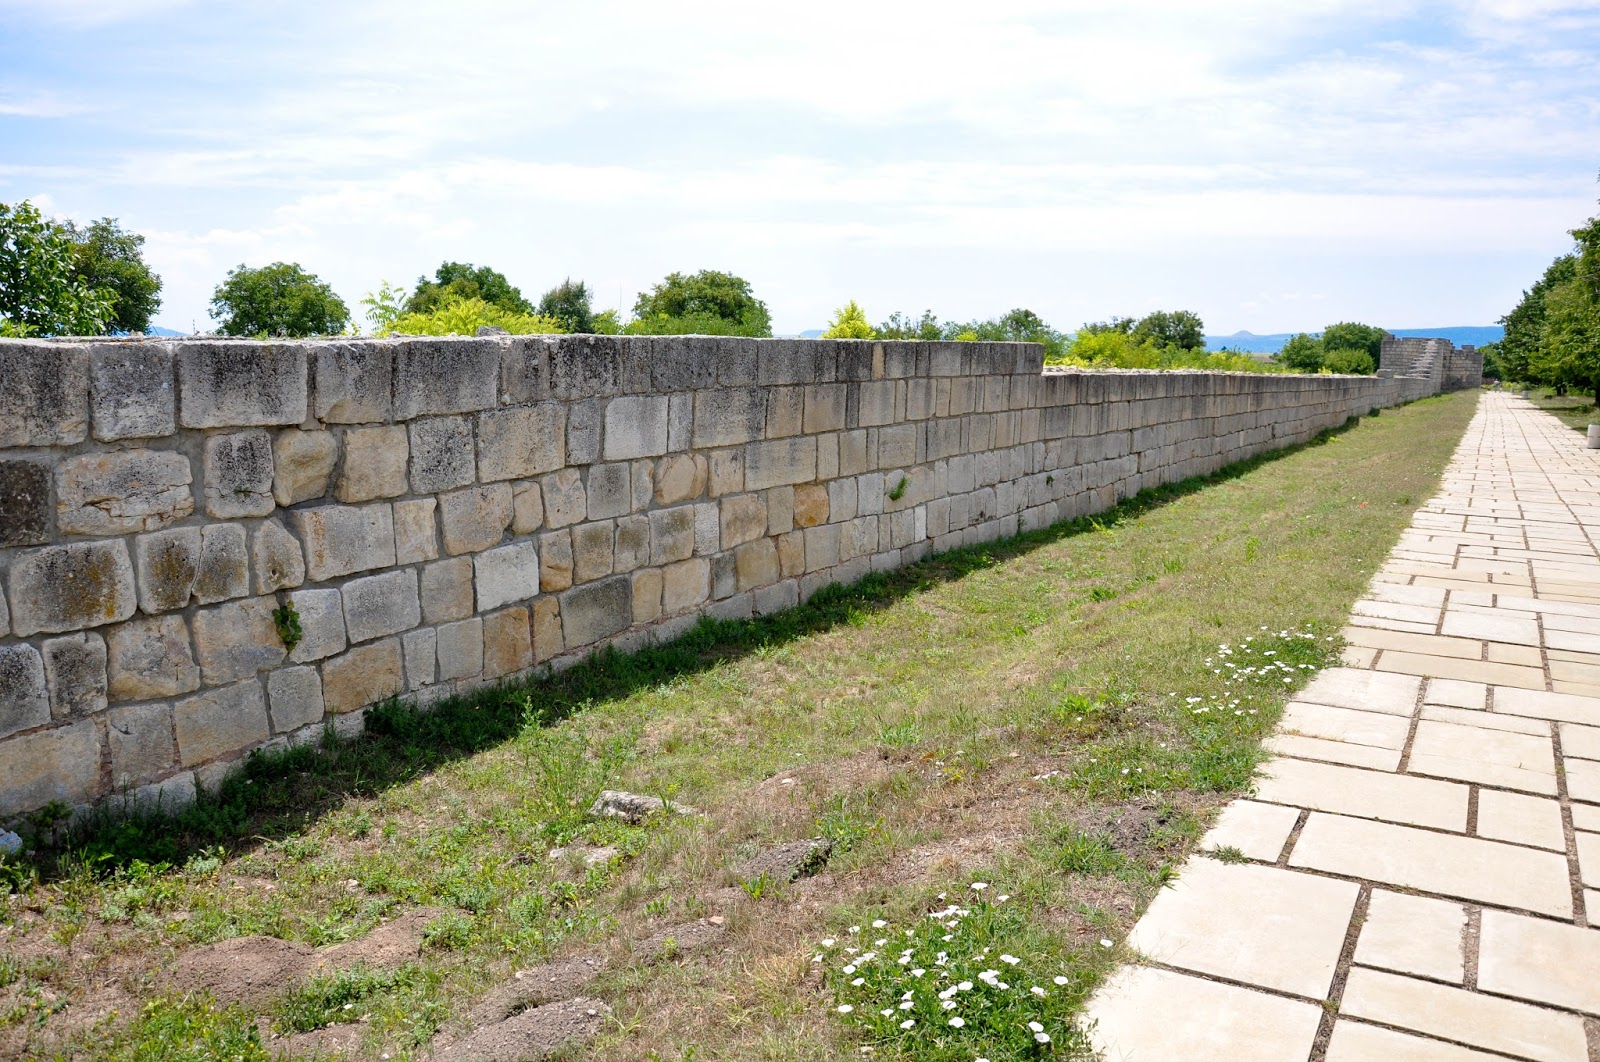 The wall, Pliska, Bulgaria